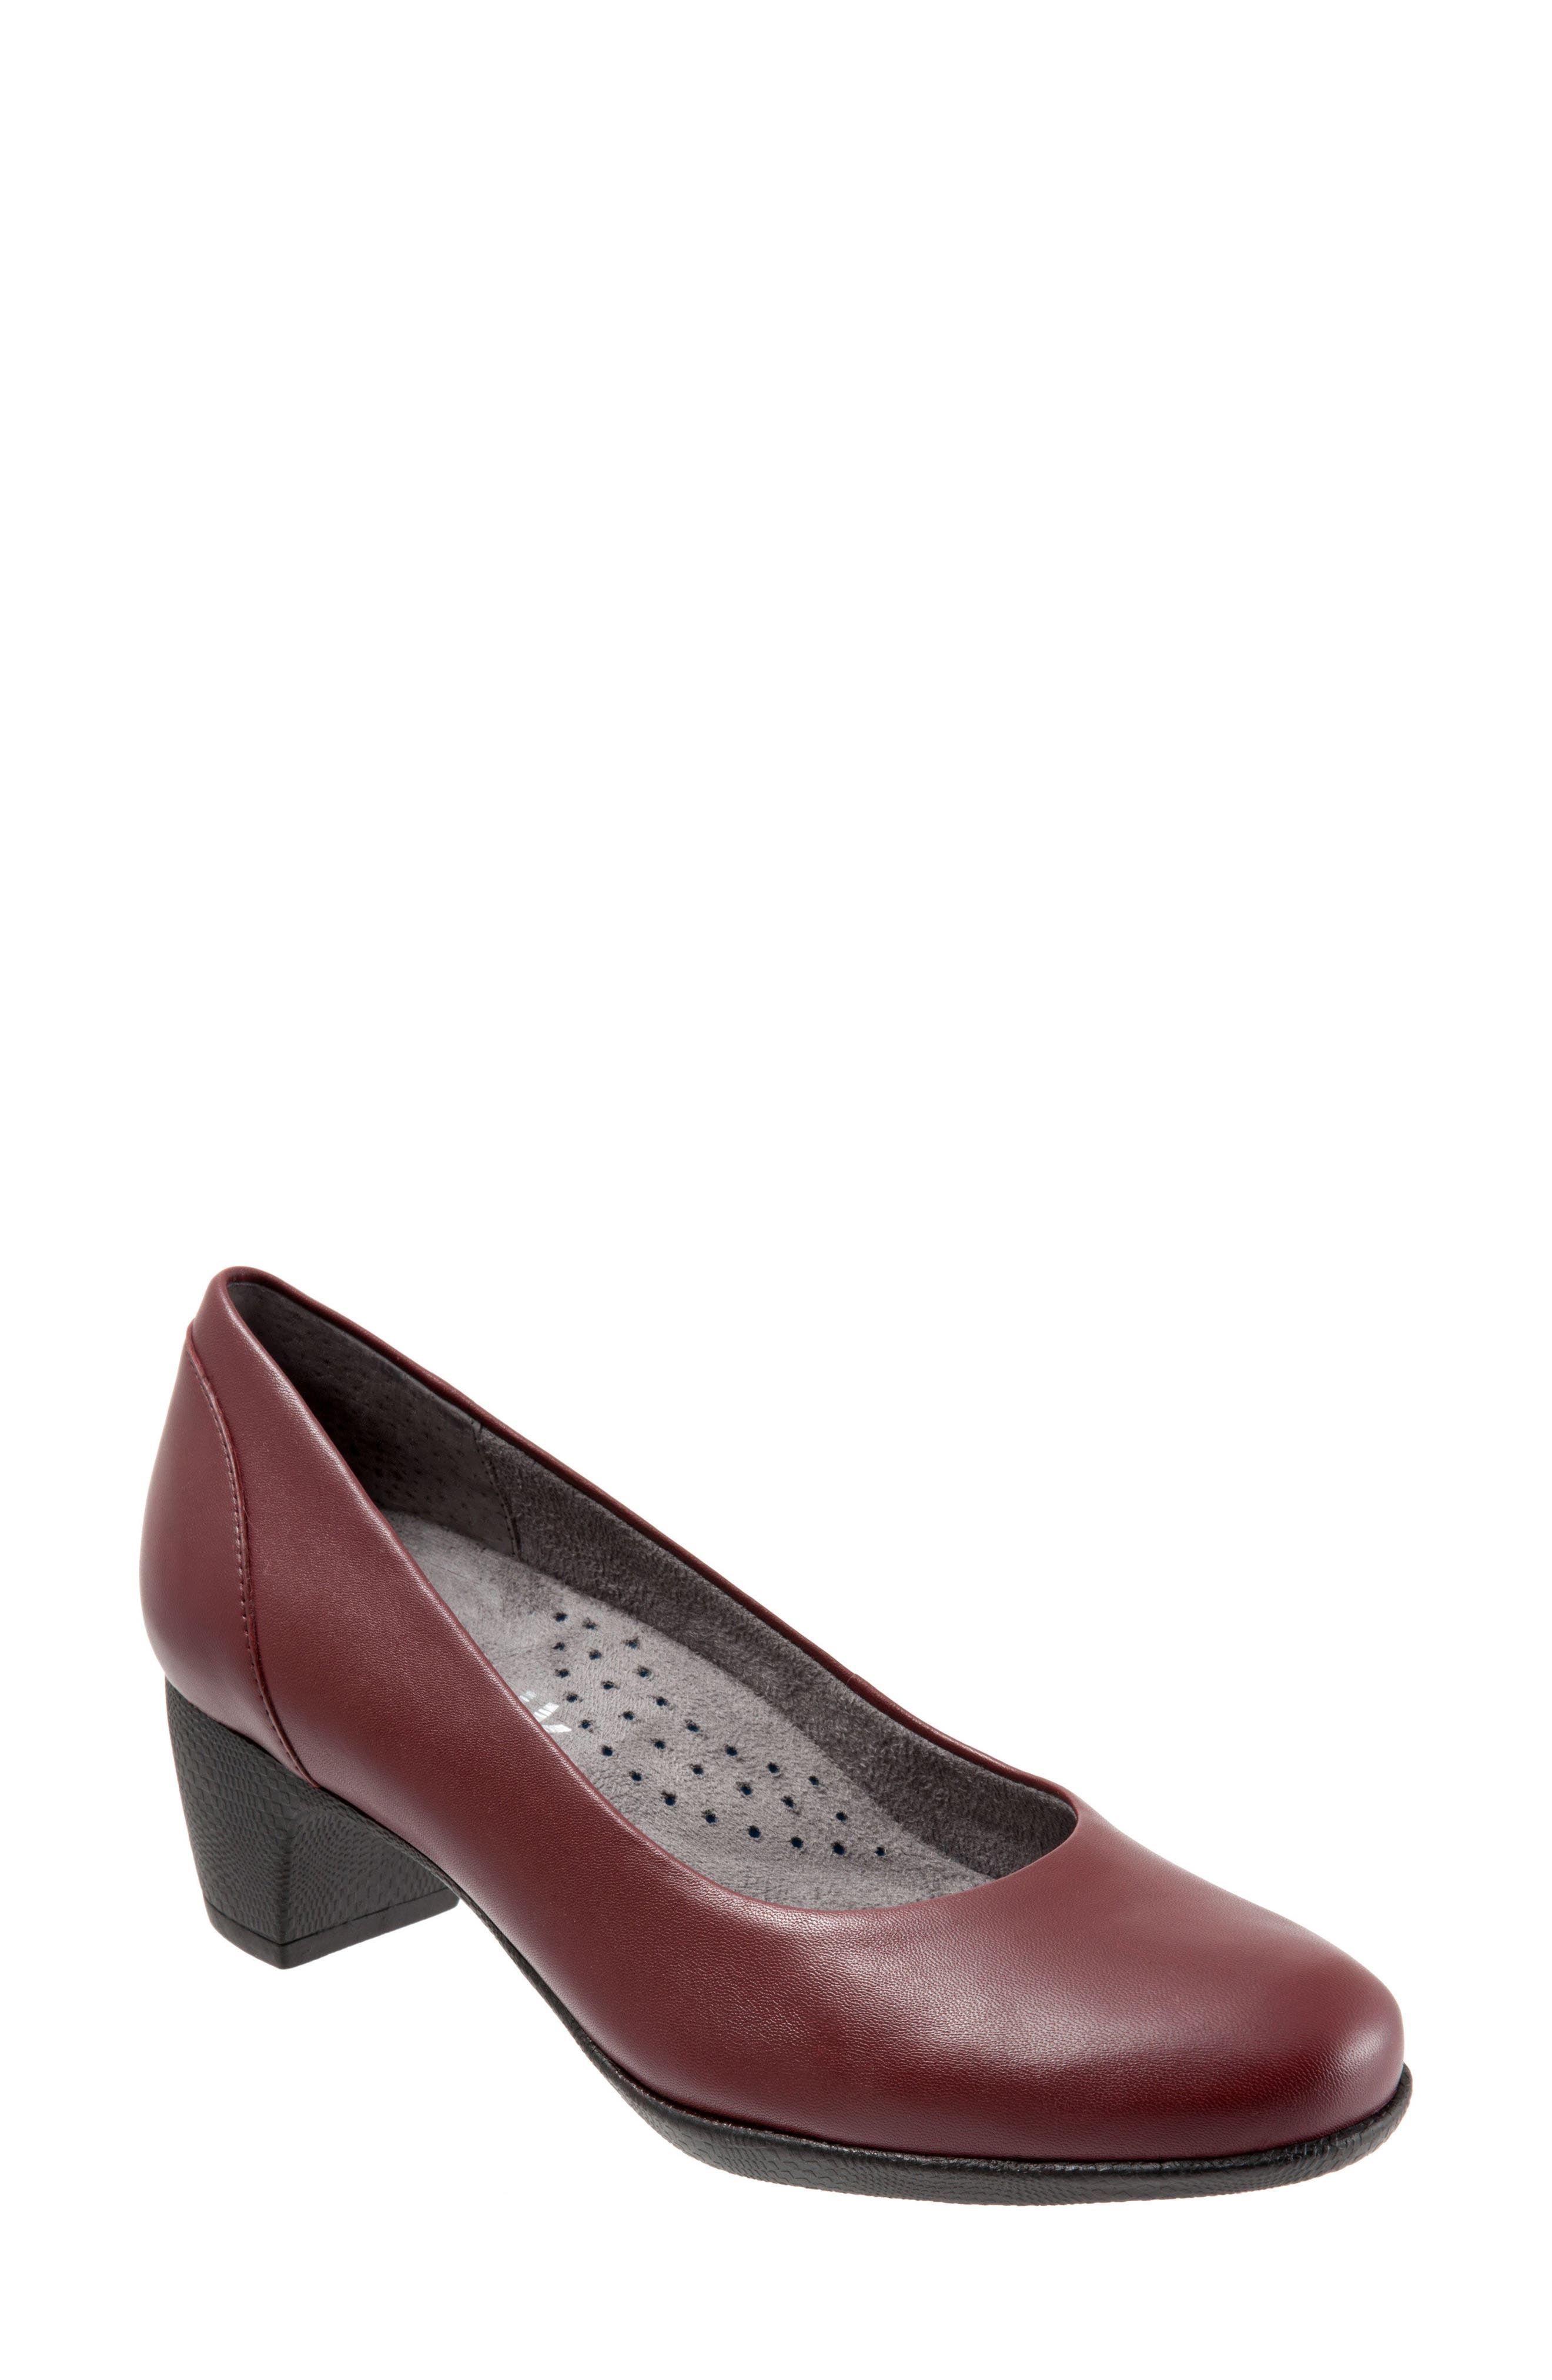 Imperial II Pump,                         Main,                         color, Dark Red Leather